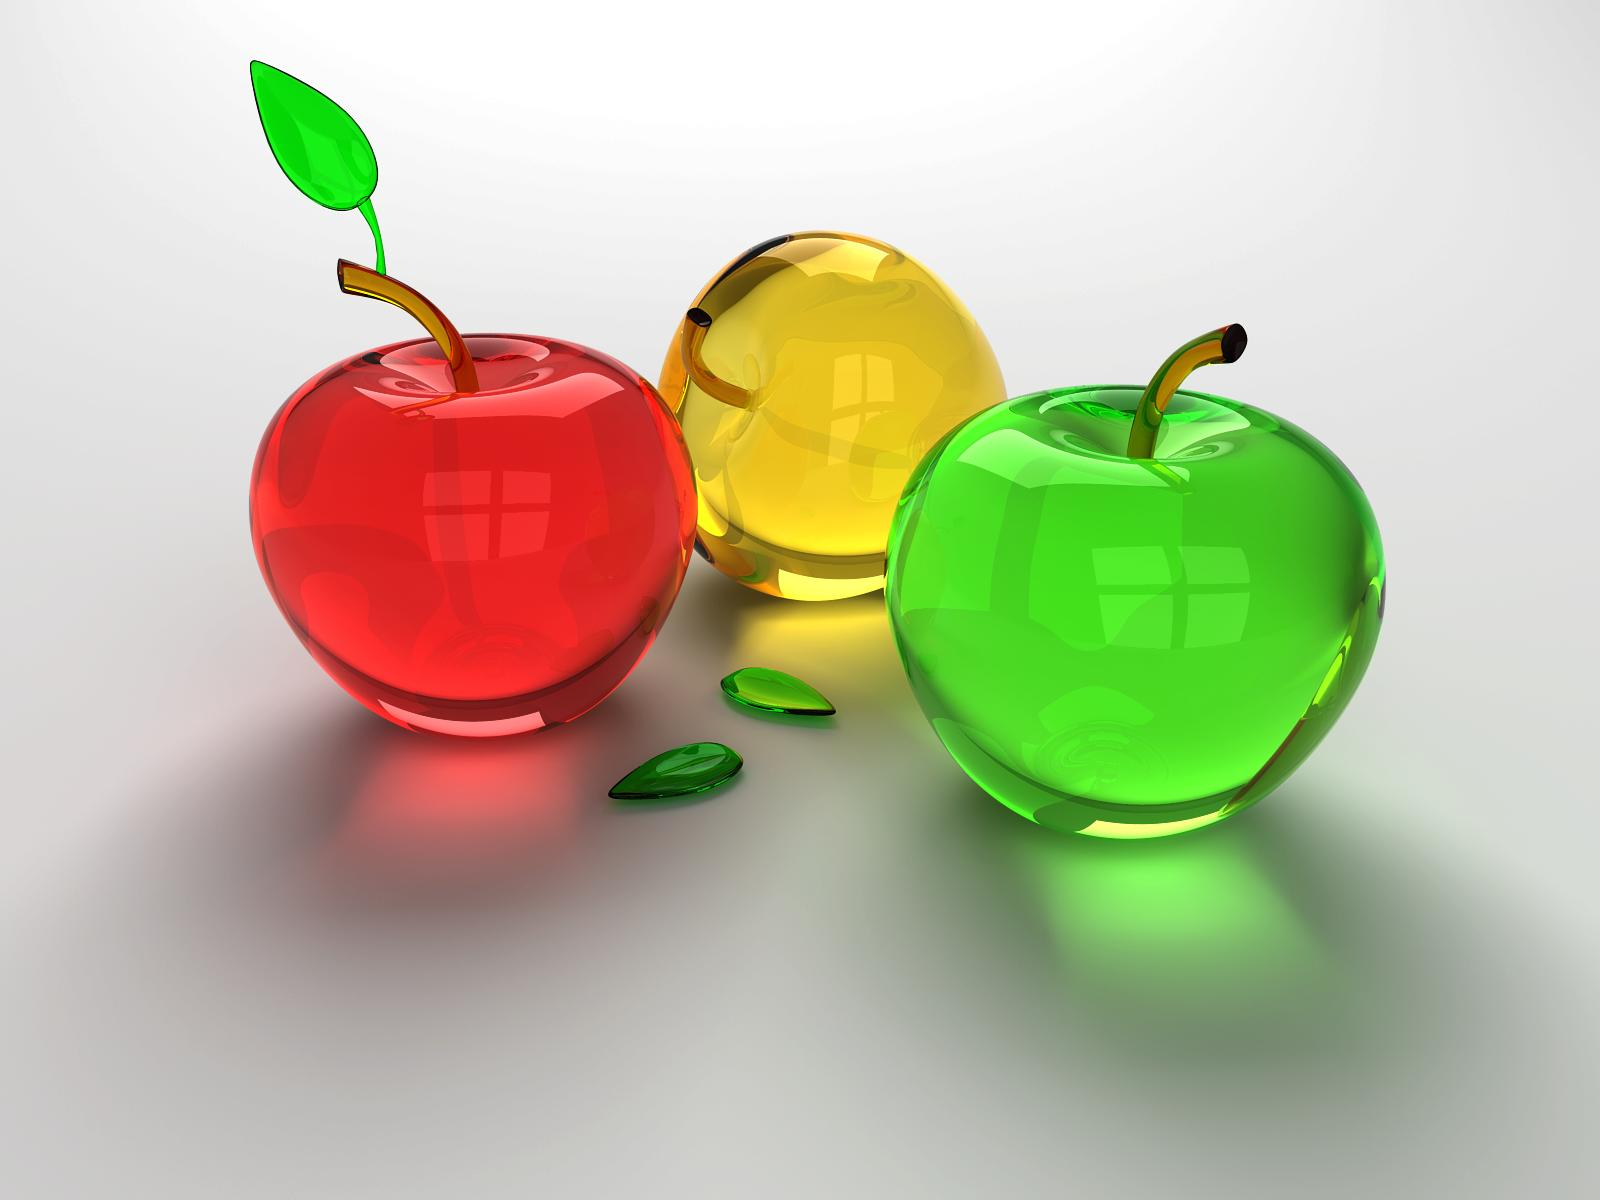 Free Download Glitter 3D Glass Apples Wallpaper